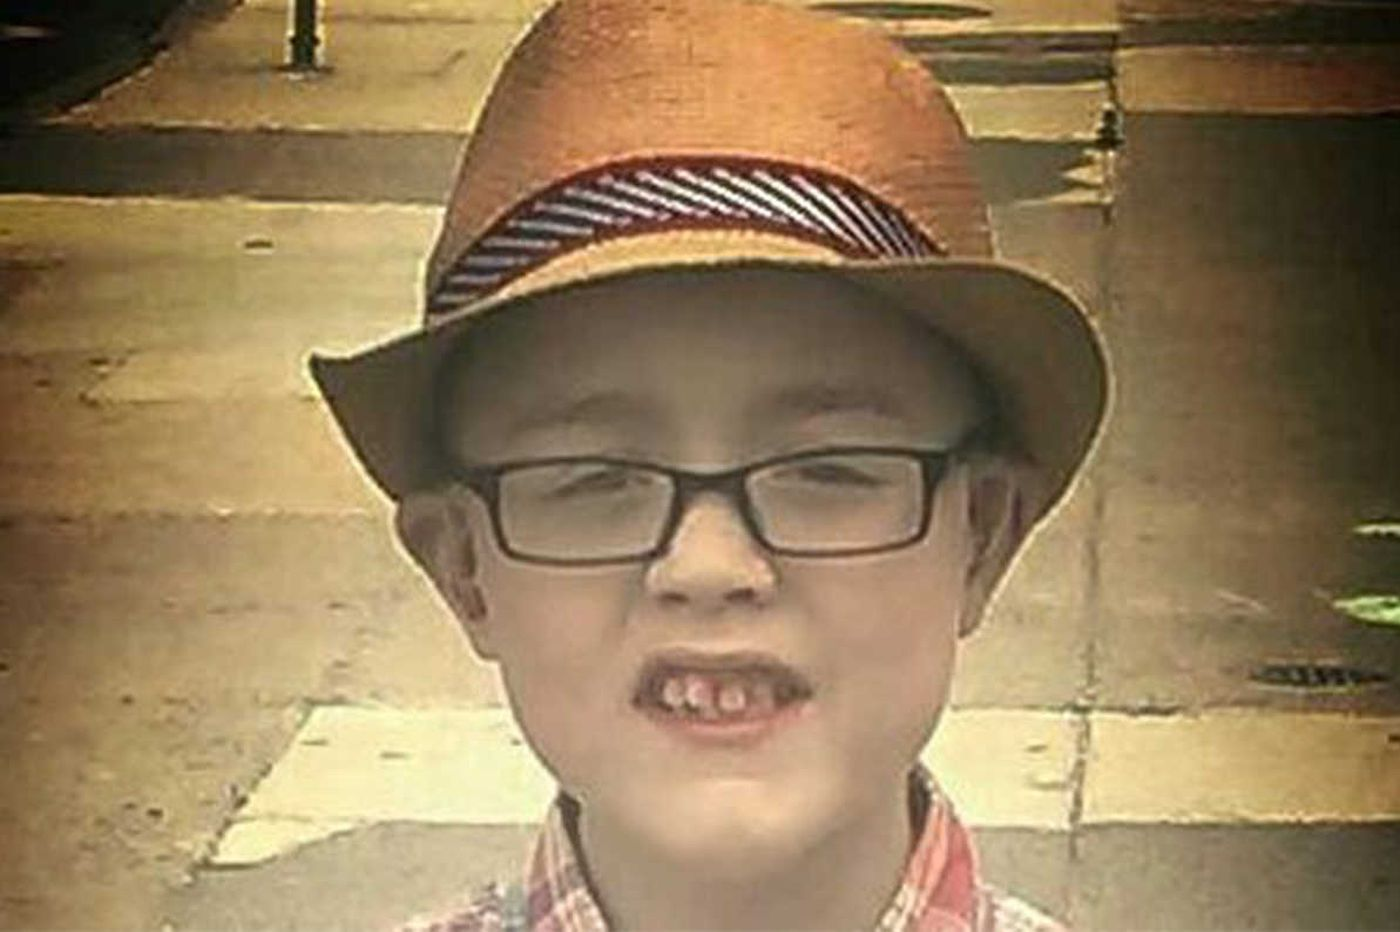 Finally, after two years, criminal charges in a child's heartbreaking death   Mike Newall